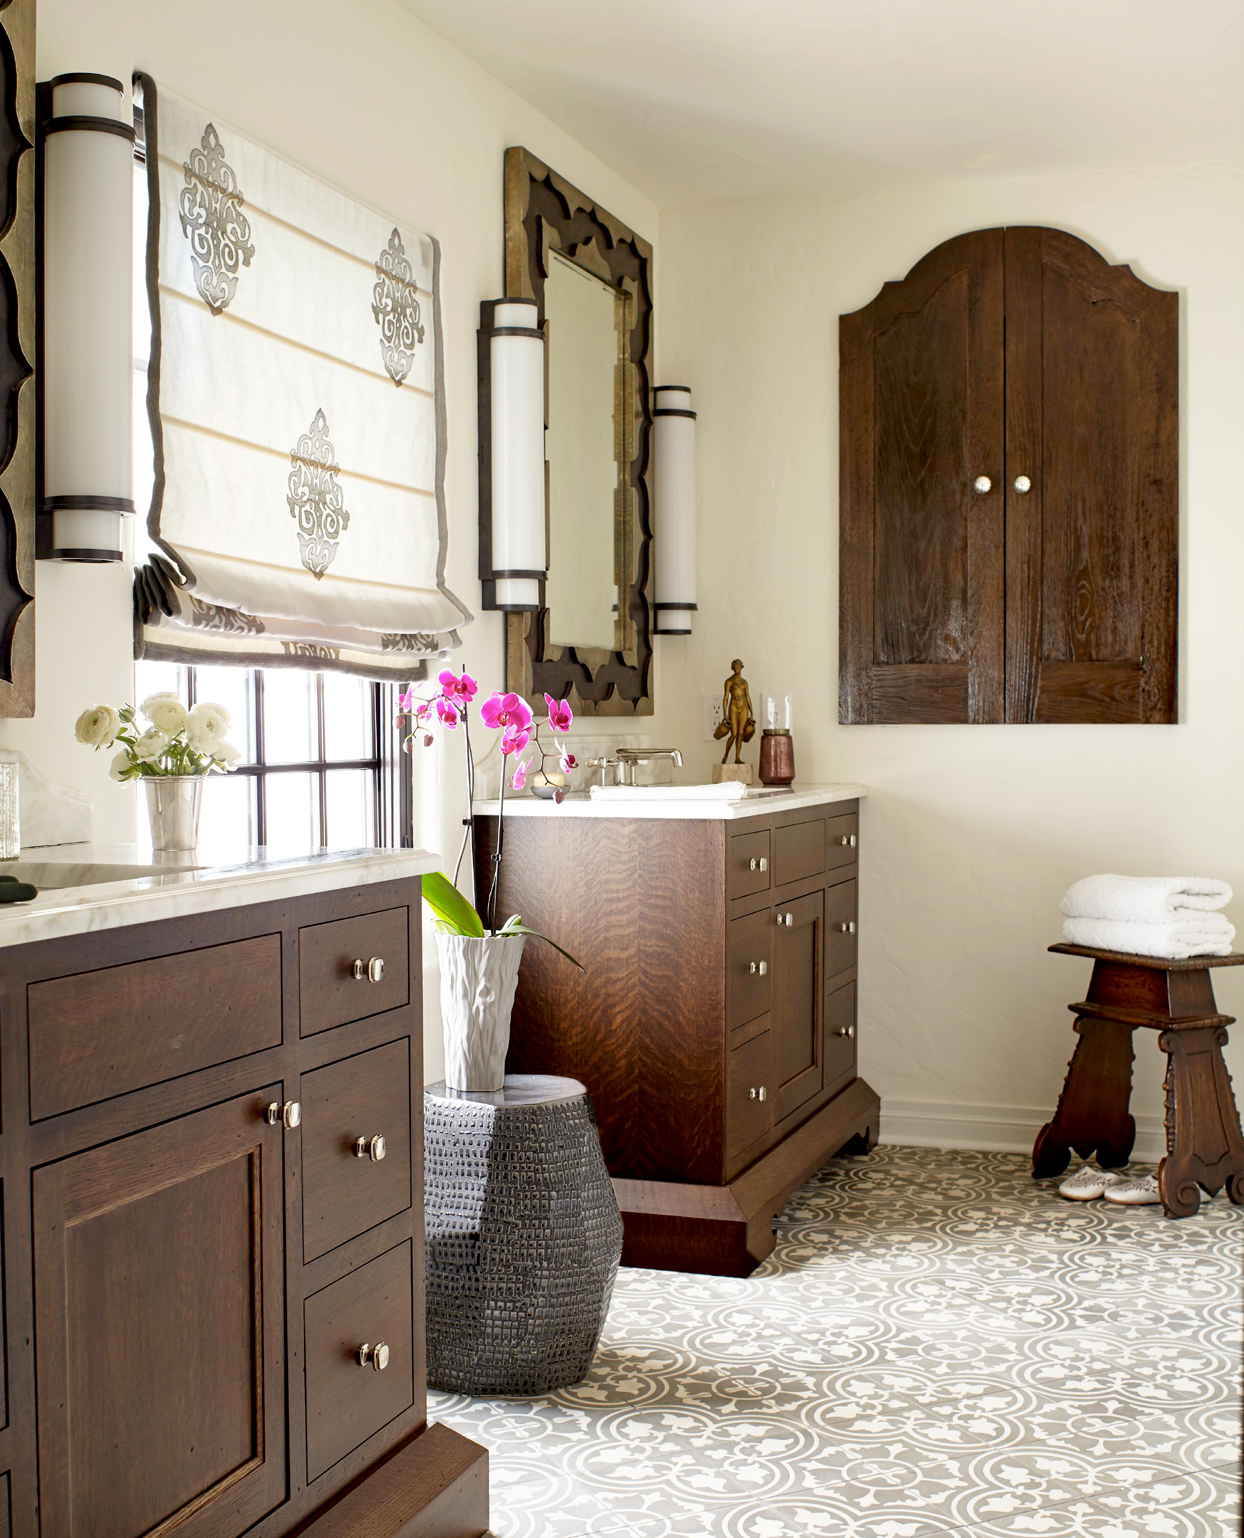 bathroom with Moroccan style